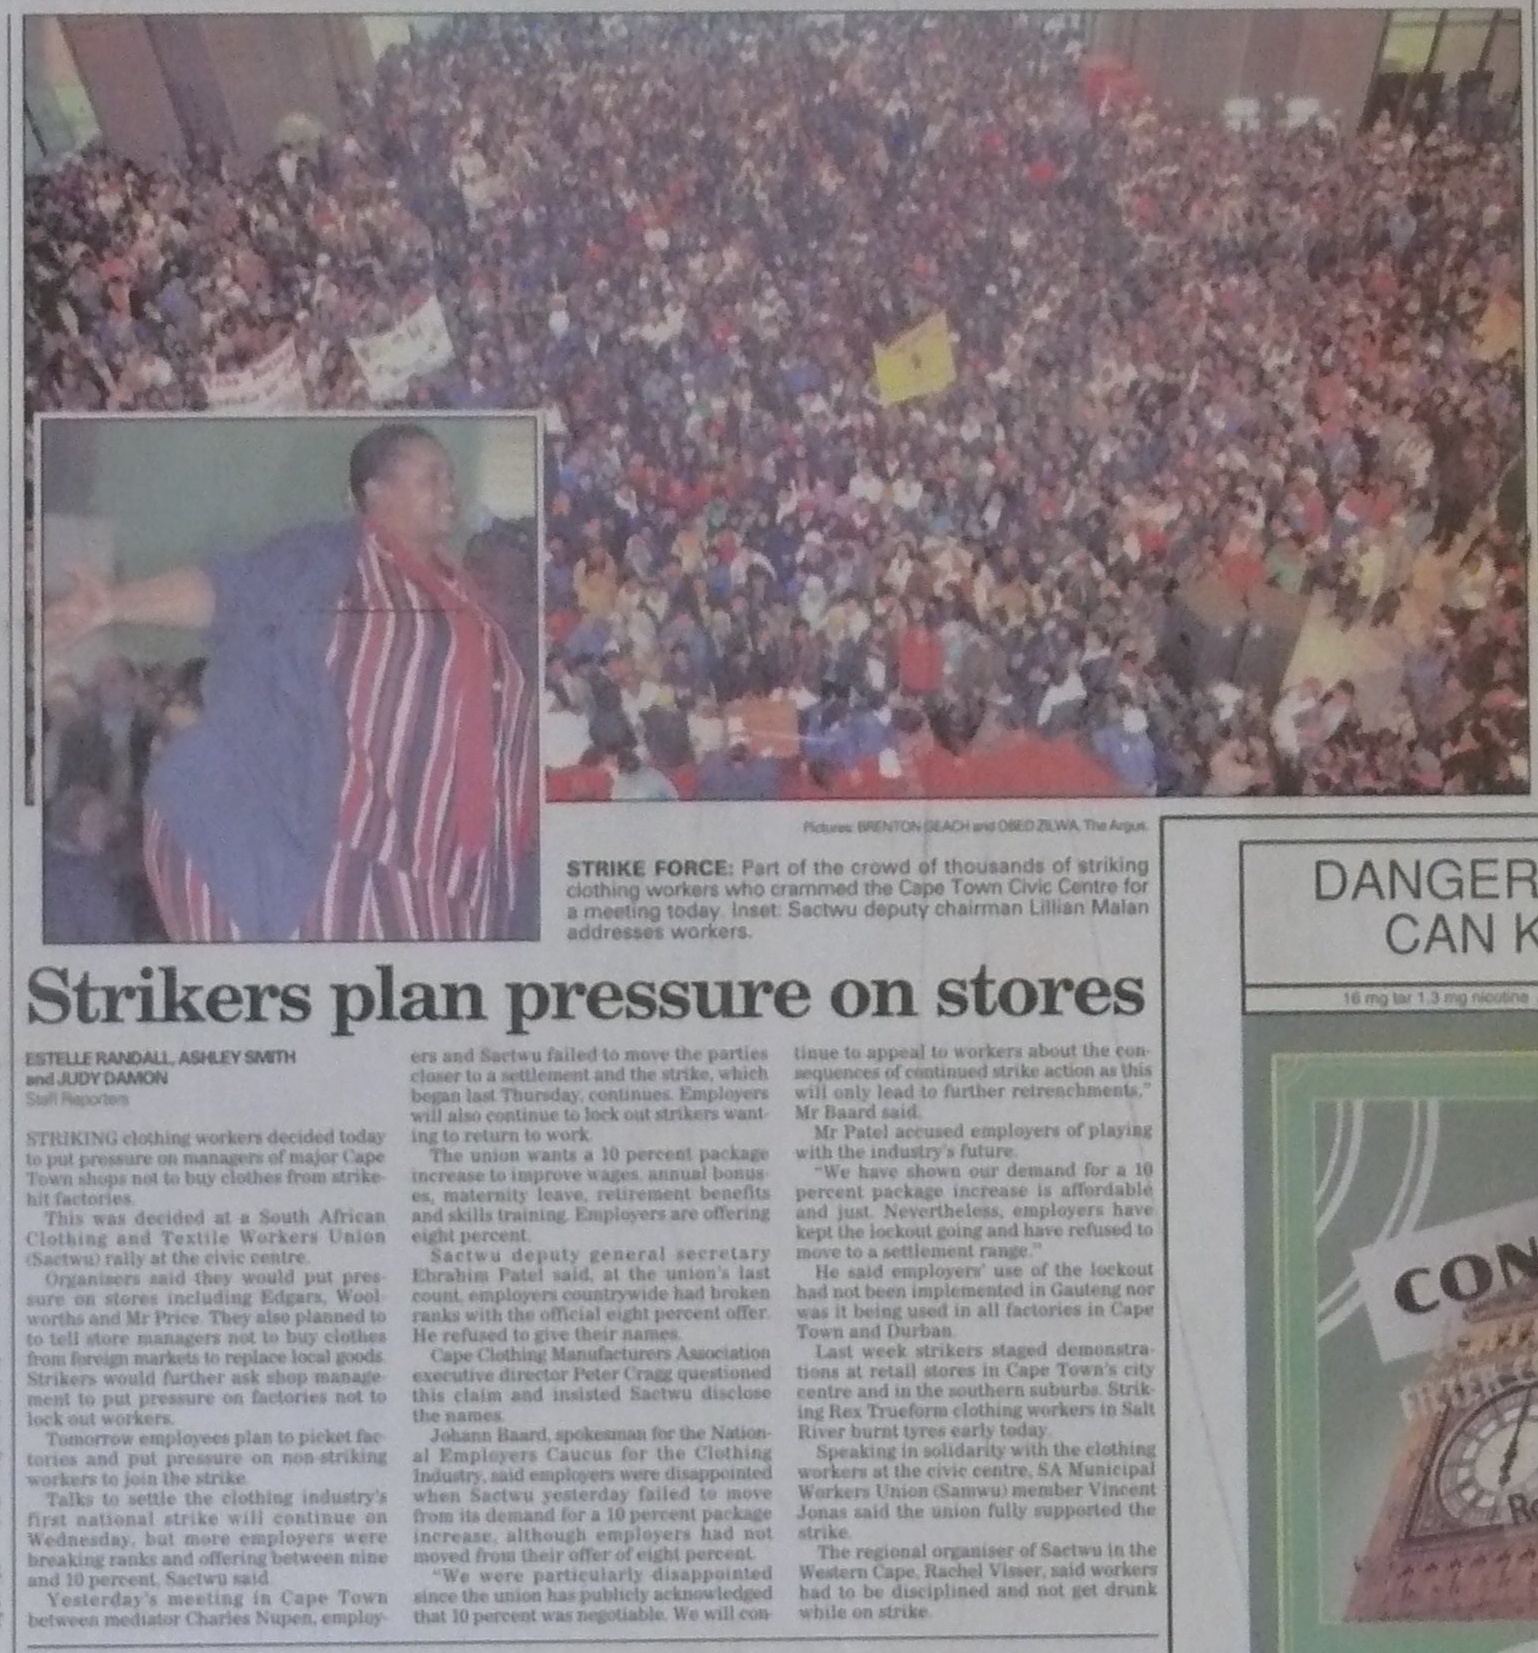 Article published in  The Cape Argus  on July 29, 1996 about the clothing strike featuring Lillian Malan.